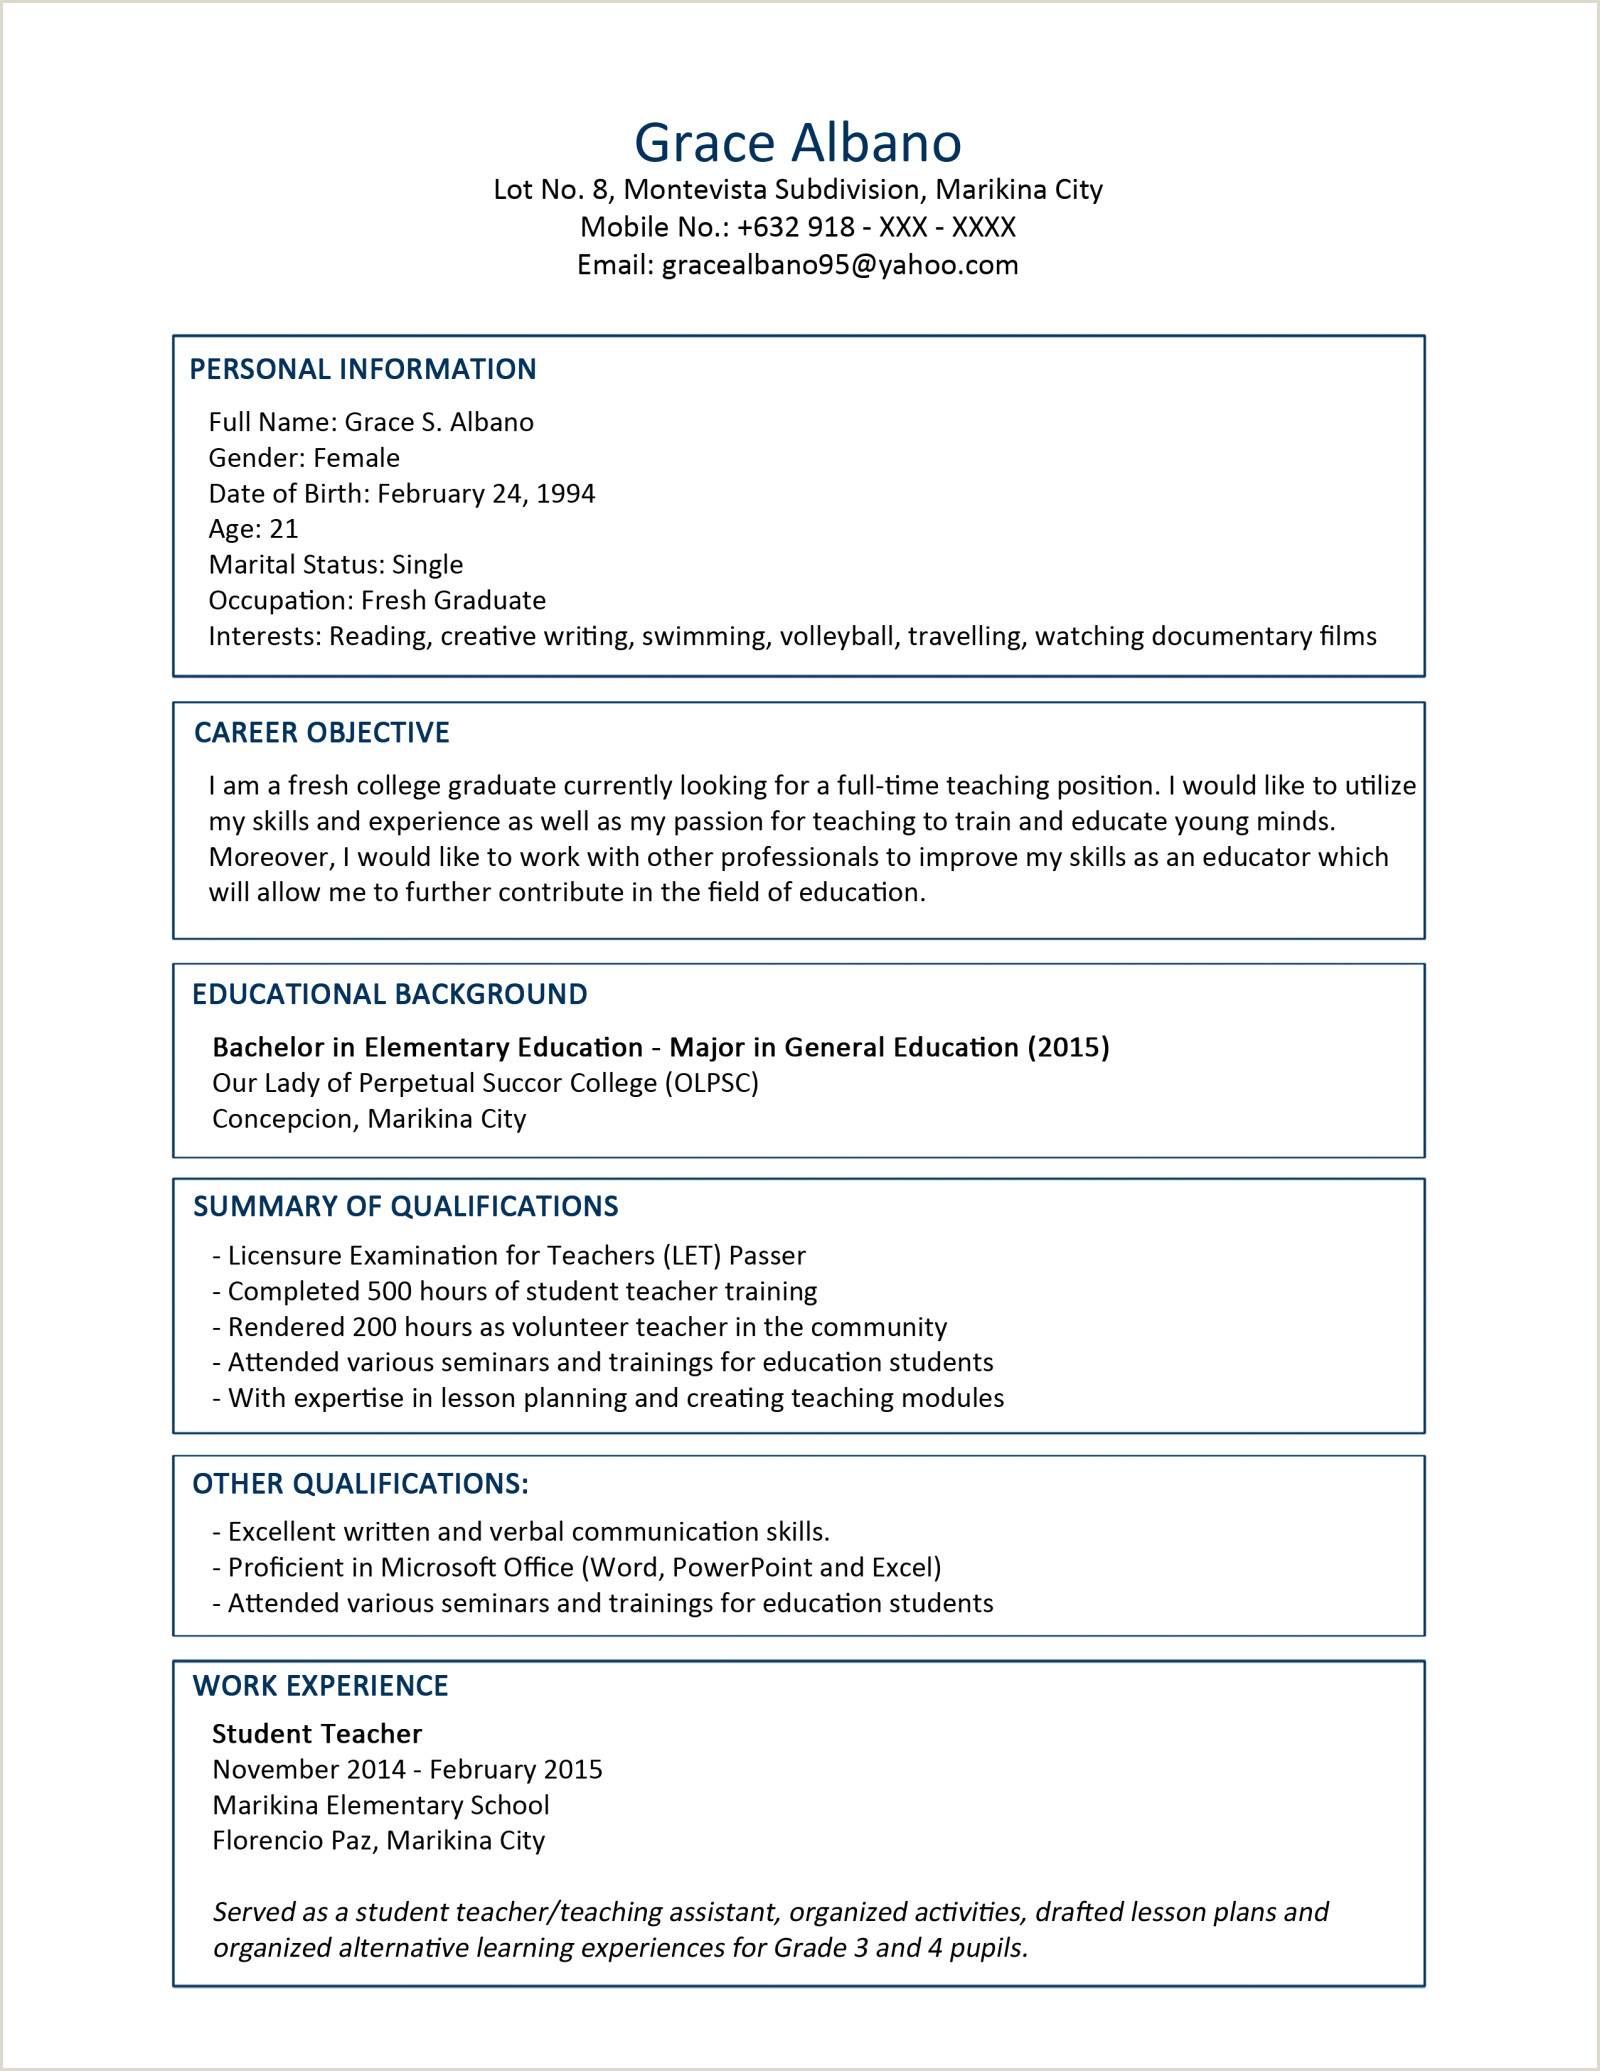 Freshers Resume format Download In Ms Word for Accountant C V 3 Resume format Sample Latest 2019